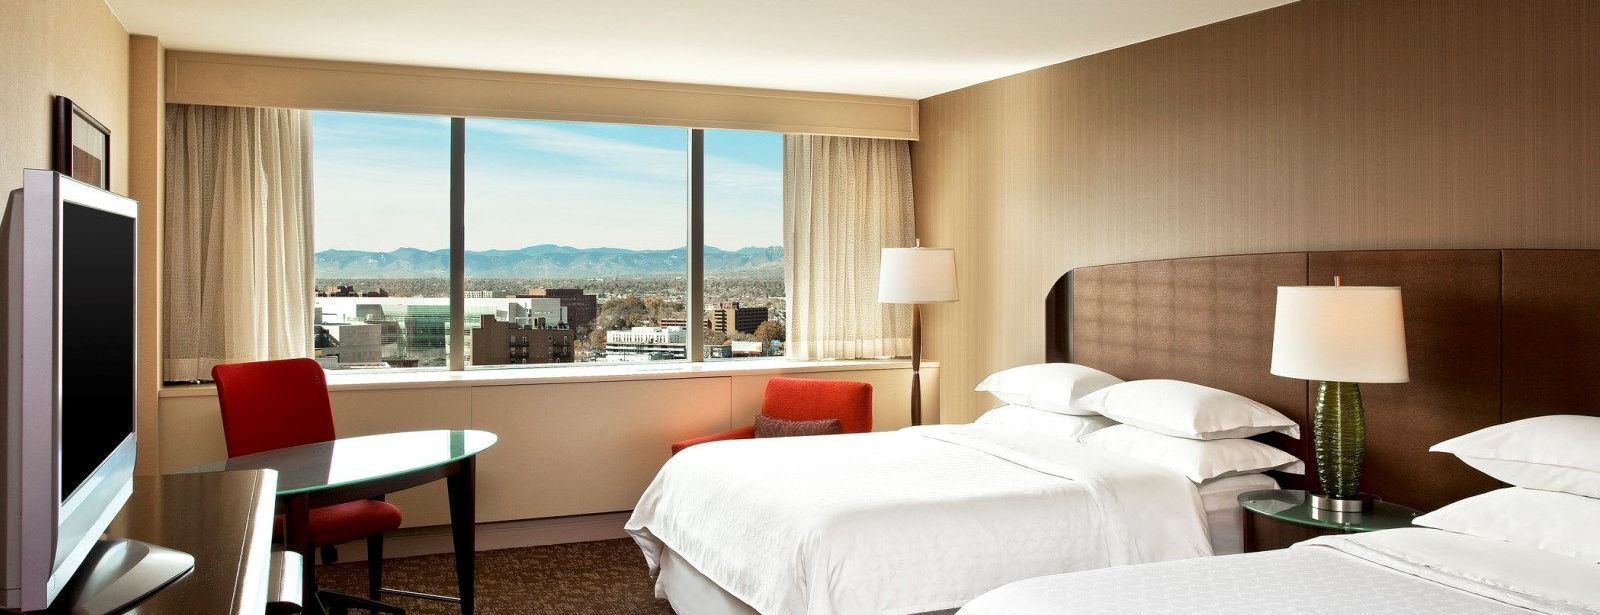 Denver Accommodations - Premium Mountain Views